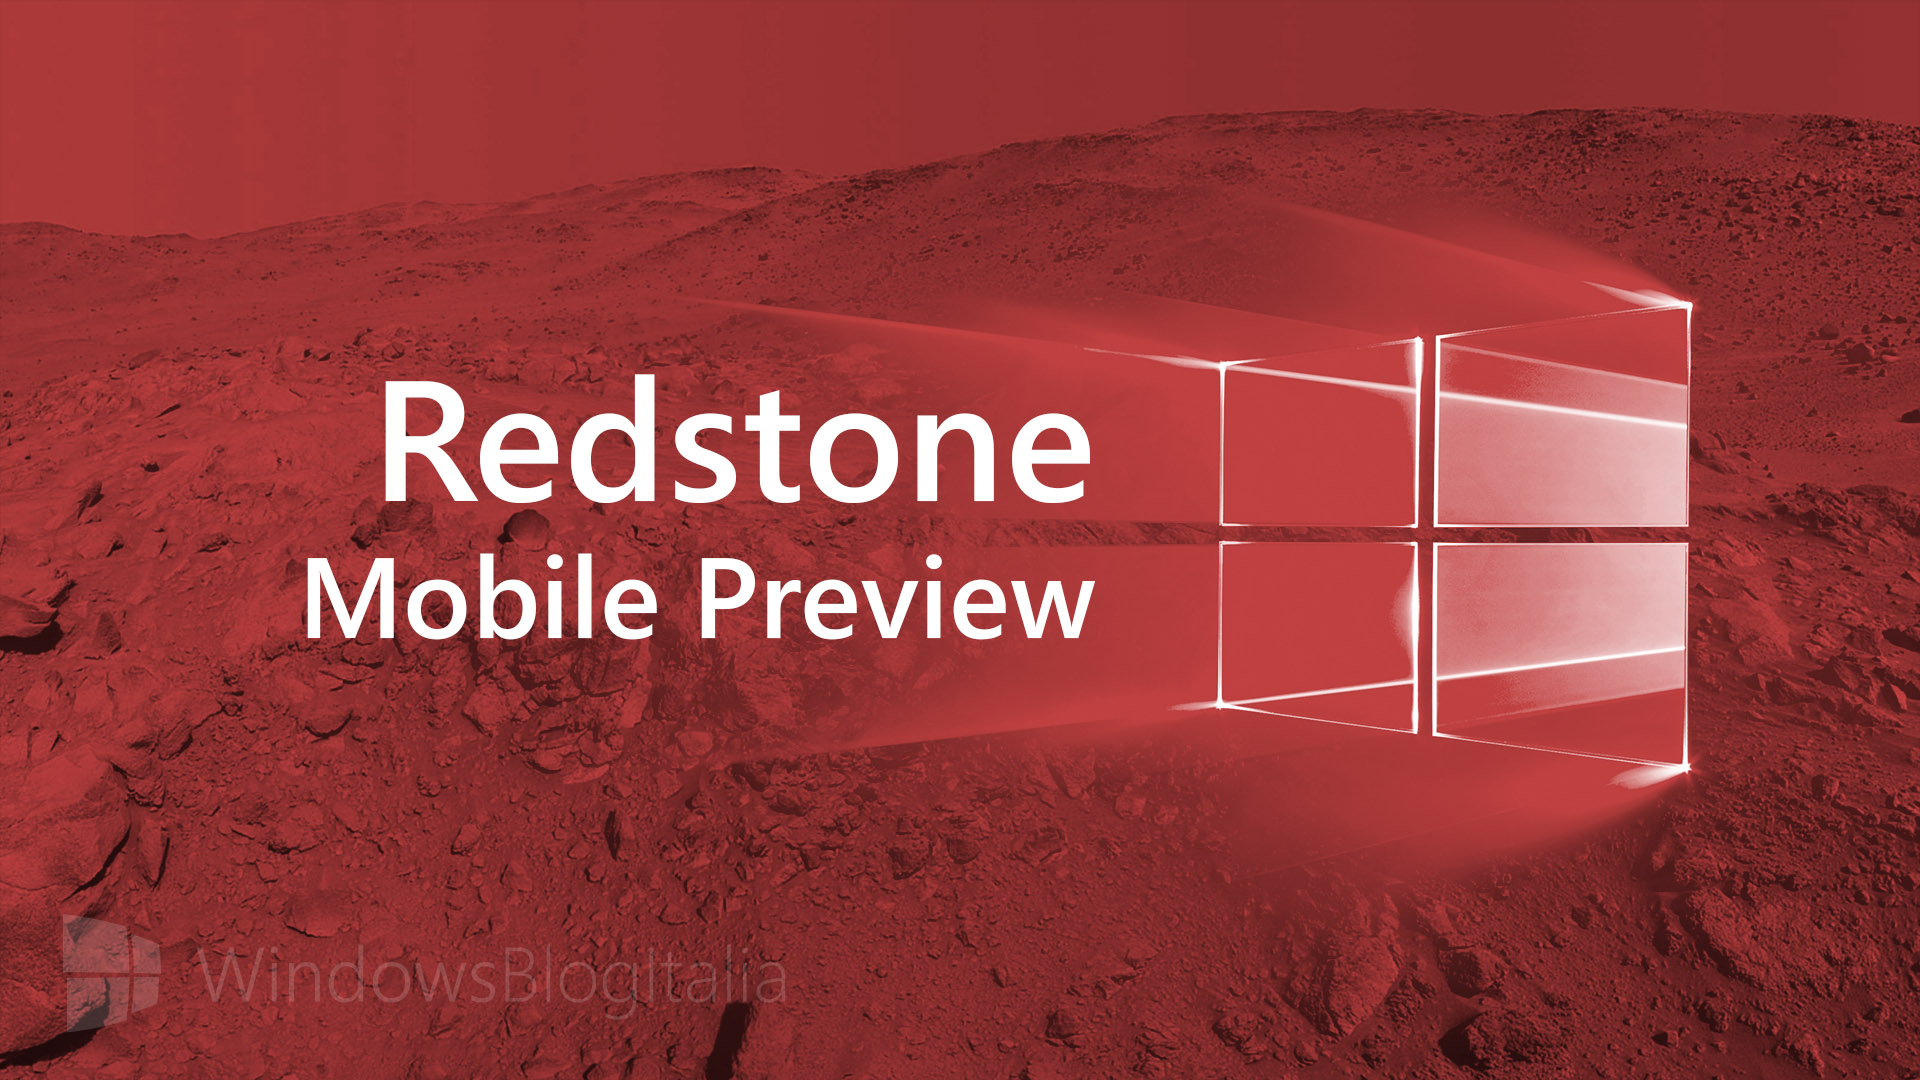 Redstone Mobile Preview